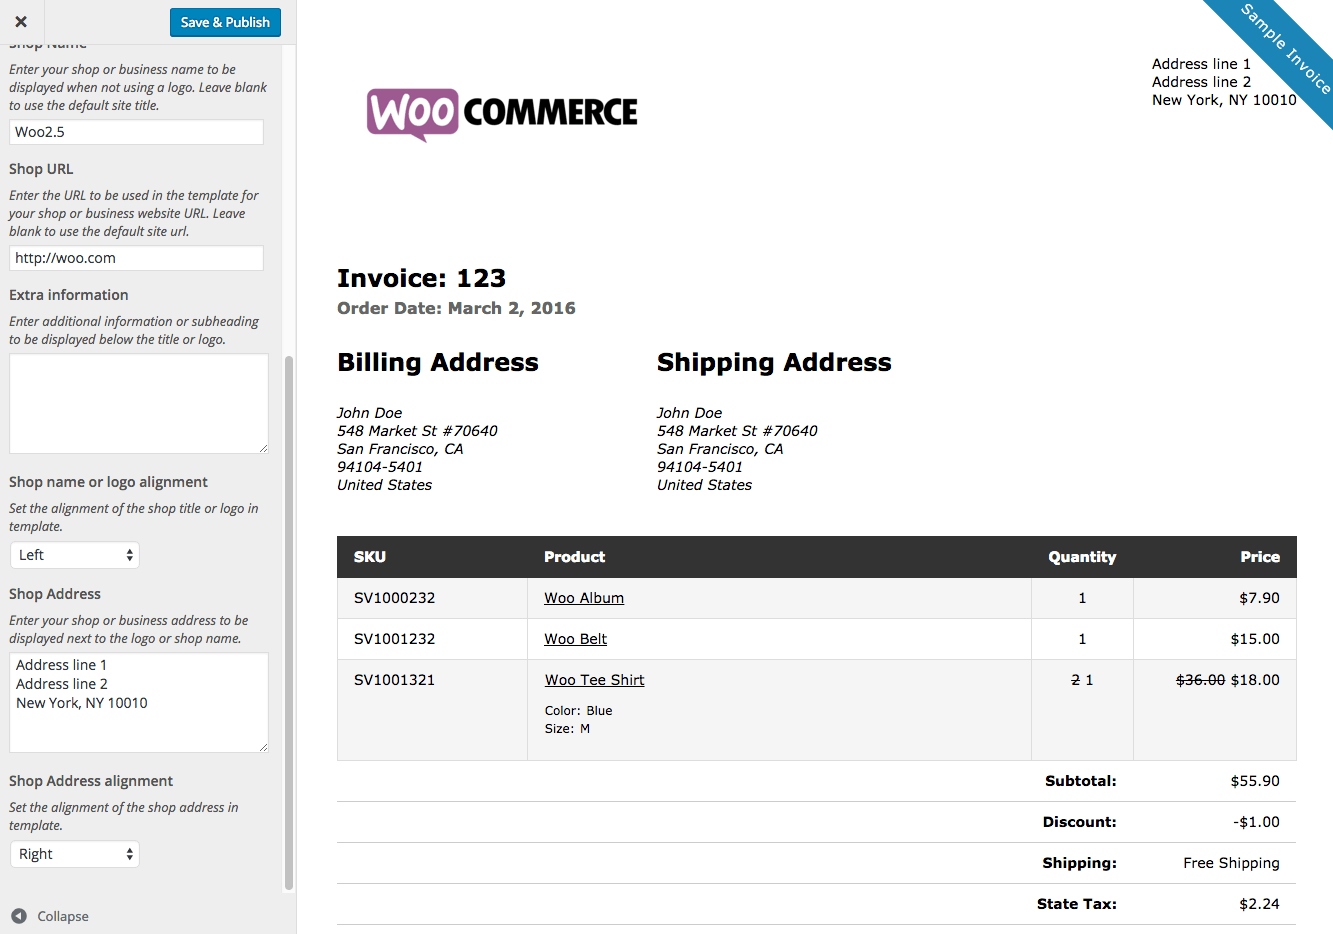 Shopdesignsus  Seductive Print Invoices Amp Packing Lists  Woocommerce With Inspiring Woocommerce Print Invoices  Packing Lists Customizer With Endearing Invoice Template Services Rendered Also Invoice Format In Excel Download In Addition Invoicing Requirements And Excel Invoice Template For Mac As Well As Practicount And Invoice Additionally Recipient Created Invoice From Woocommercecom With Shopdesignsus  Inspiring Print Invoices Amp Packing Lists  Woocommerce With Endearing Woocommerce Print Invoices  Packing Lists Customizer And Seductive Invoice Template Services Rendered Also Invoice Format In Excel Download In Addition Invoicing Requirements From Woocommercecom